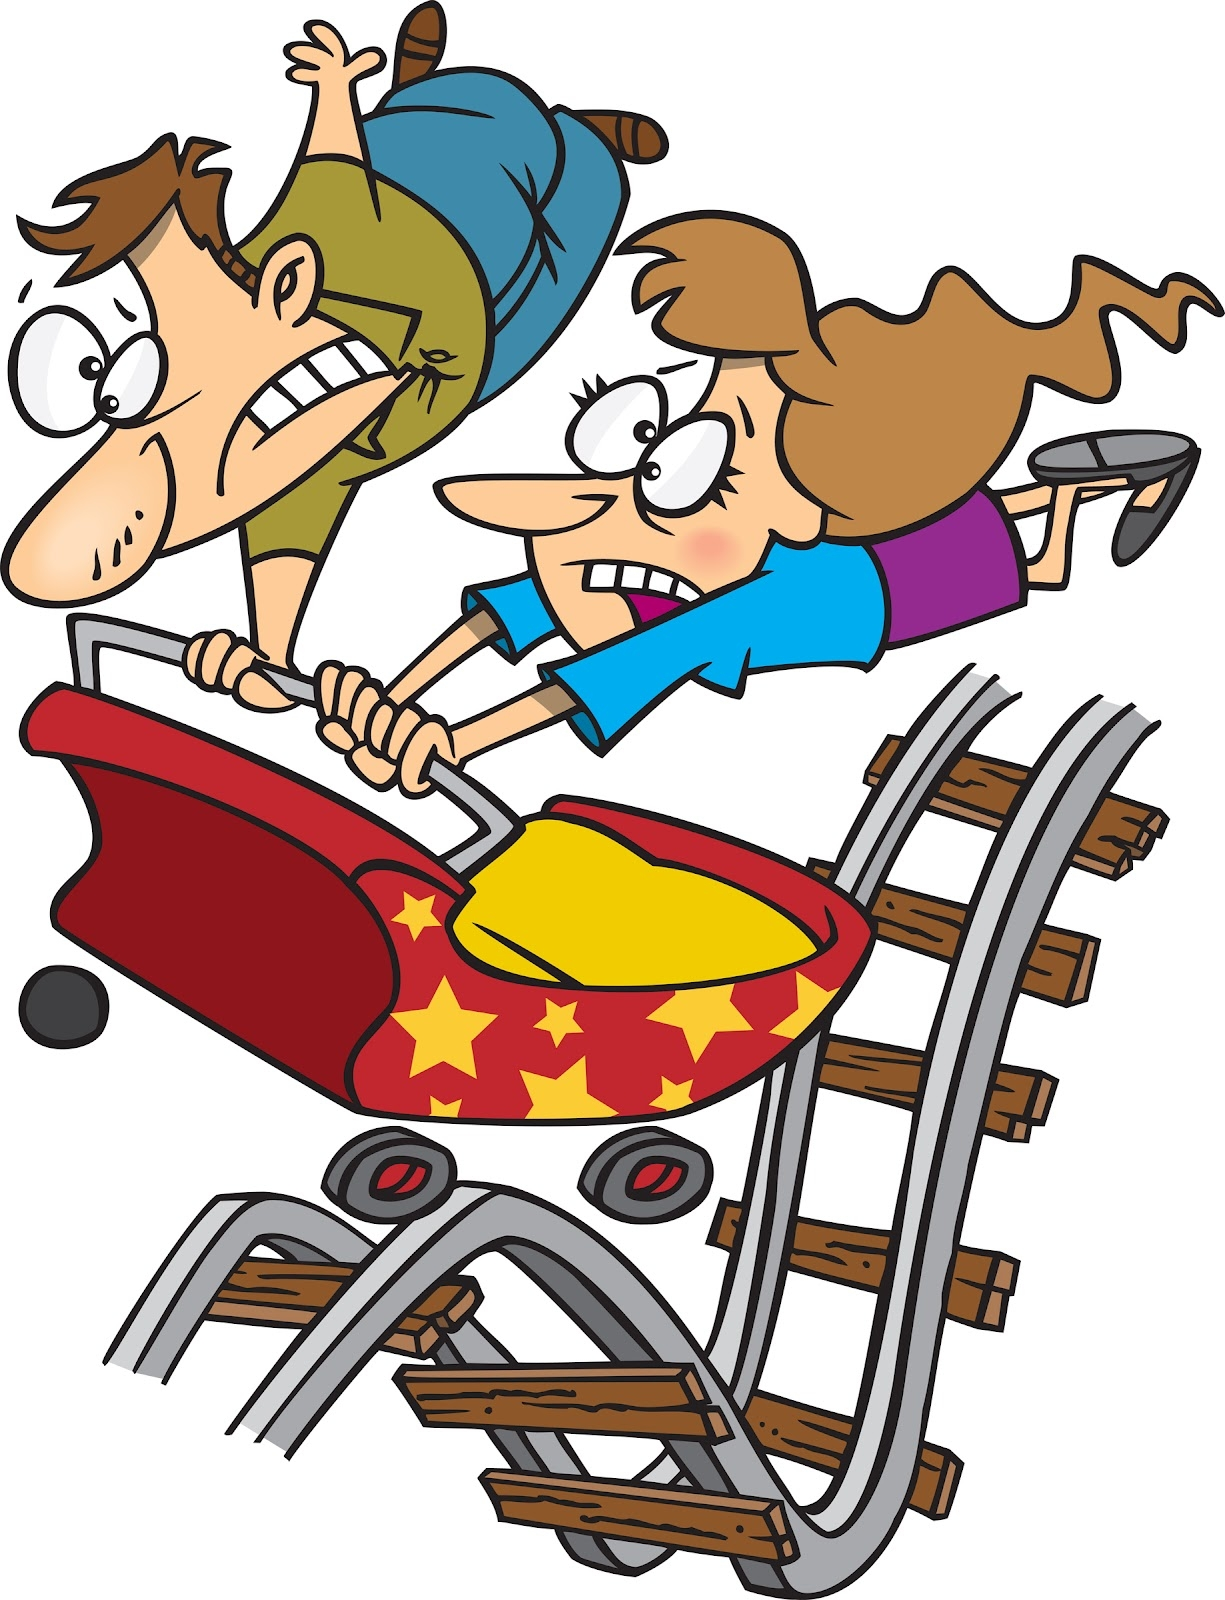 Roller coaster clipart. At getdrawings com free